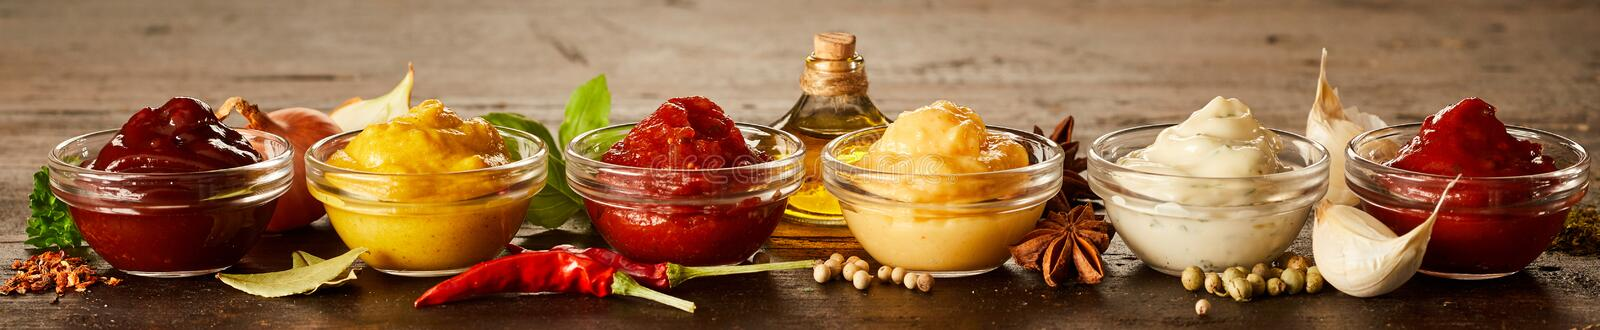 Rustic panorama banner with homemade sauces. Rustic panorama banner with a variety of individual homemade sauces and marinades in glass bowls with fresh herbs royalty free stock photo